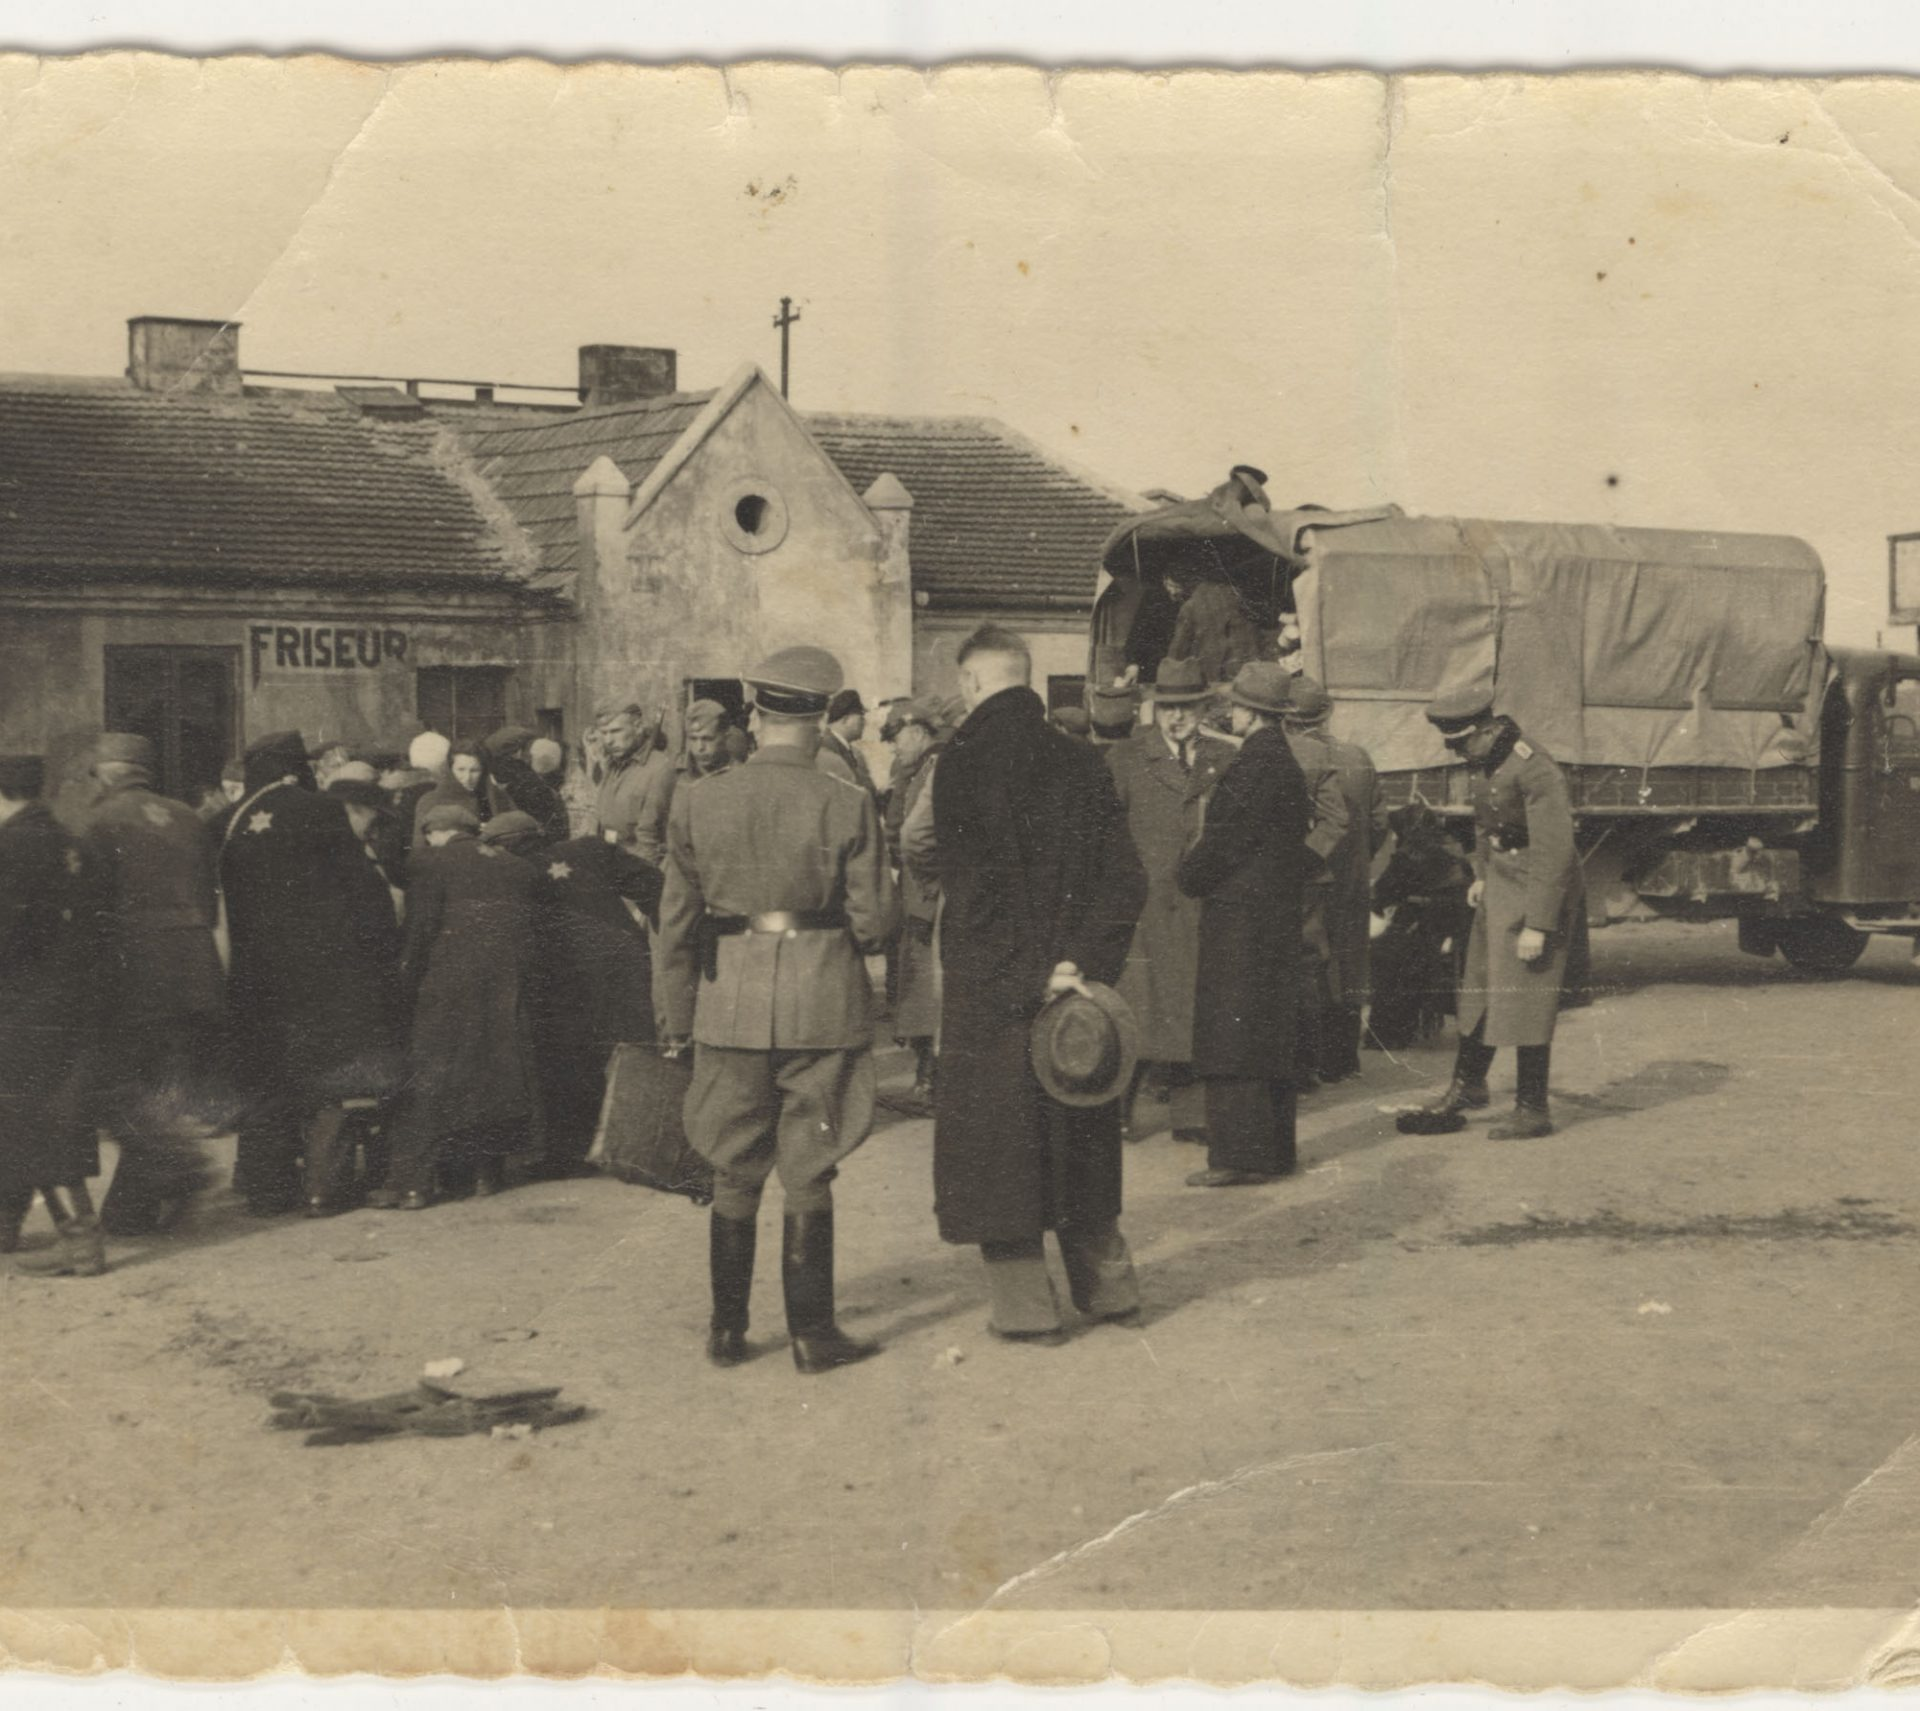 A group of Jewish residents of the Lublin ghetto stand in line to board a cattle car.